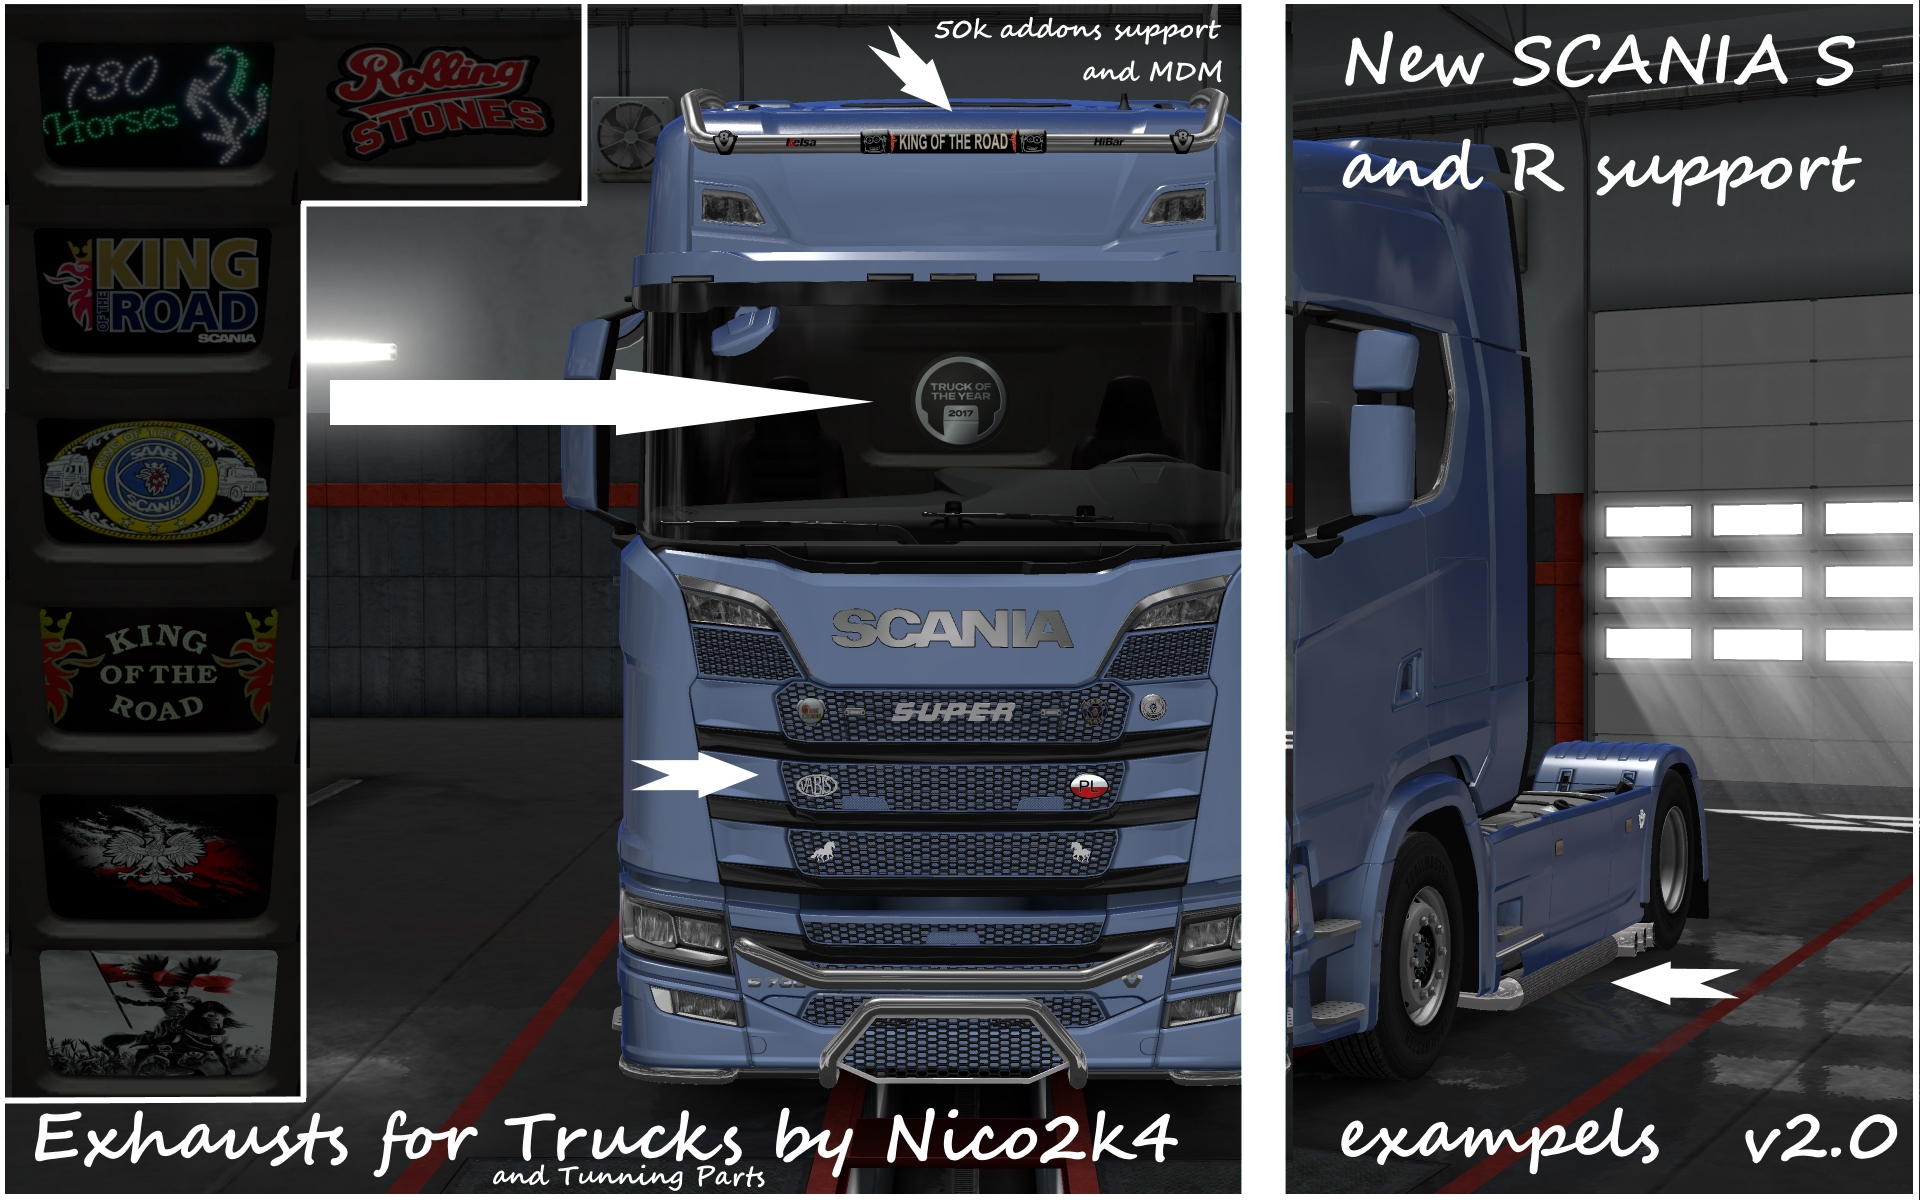 Exhausts & Accessories for Trucks v2 0 by Nico2k4 1 35 x